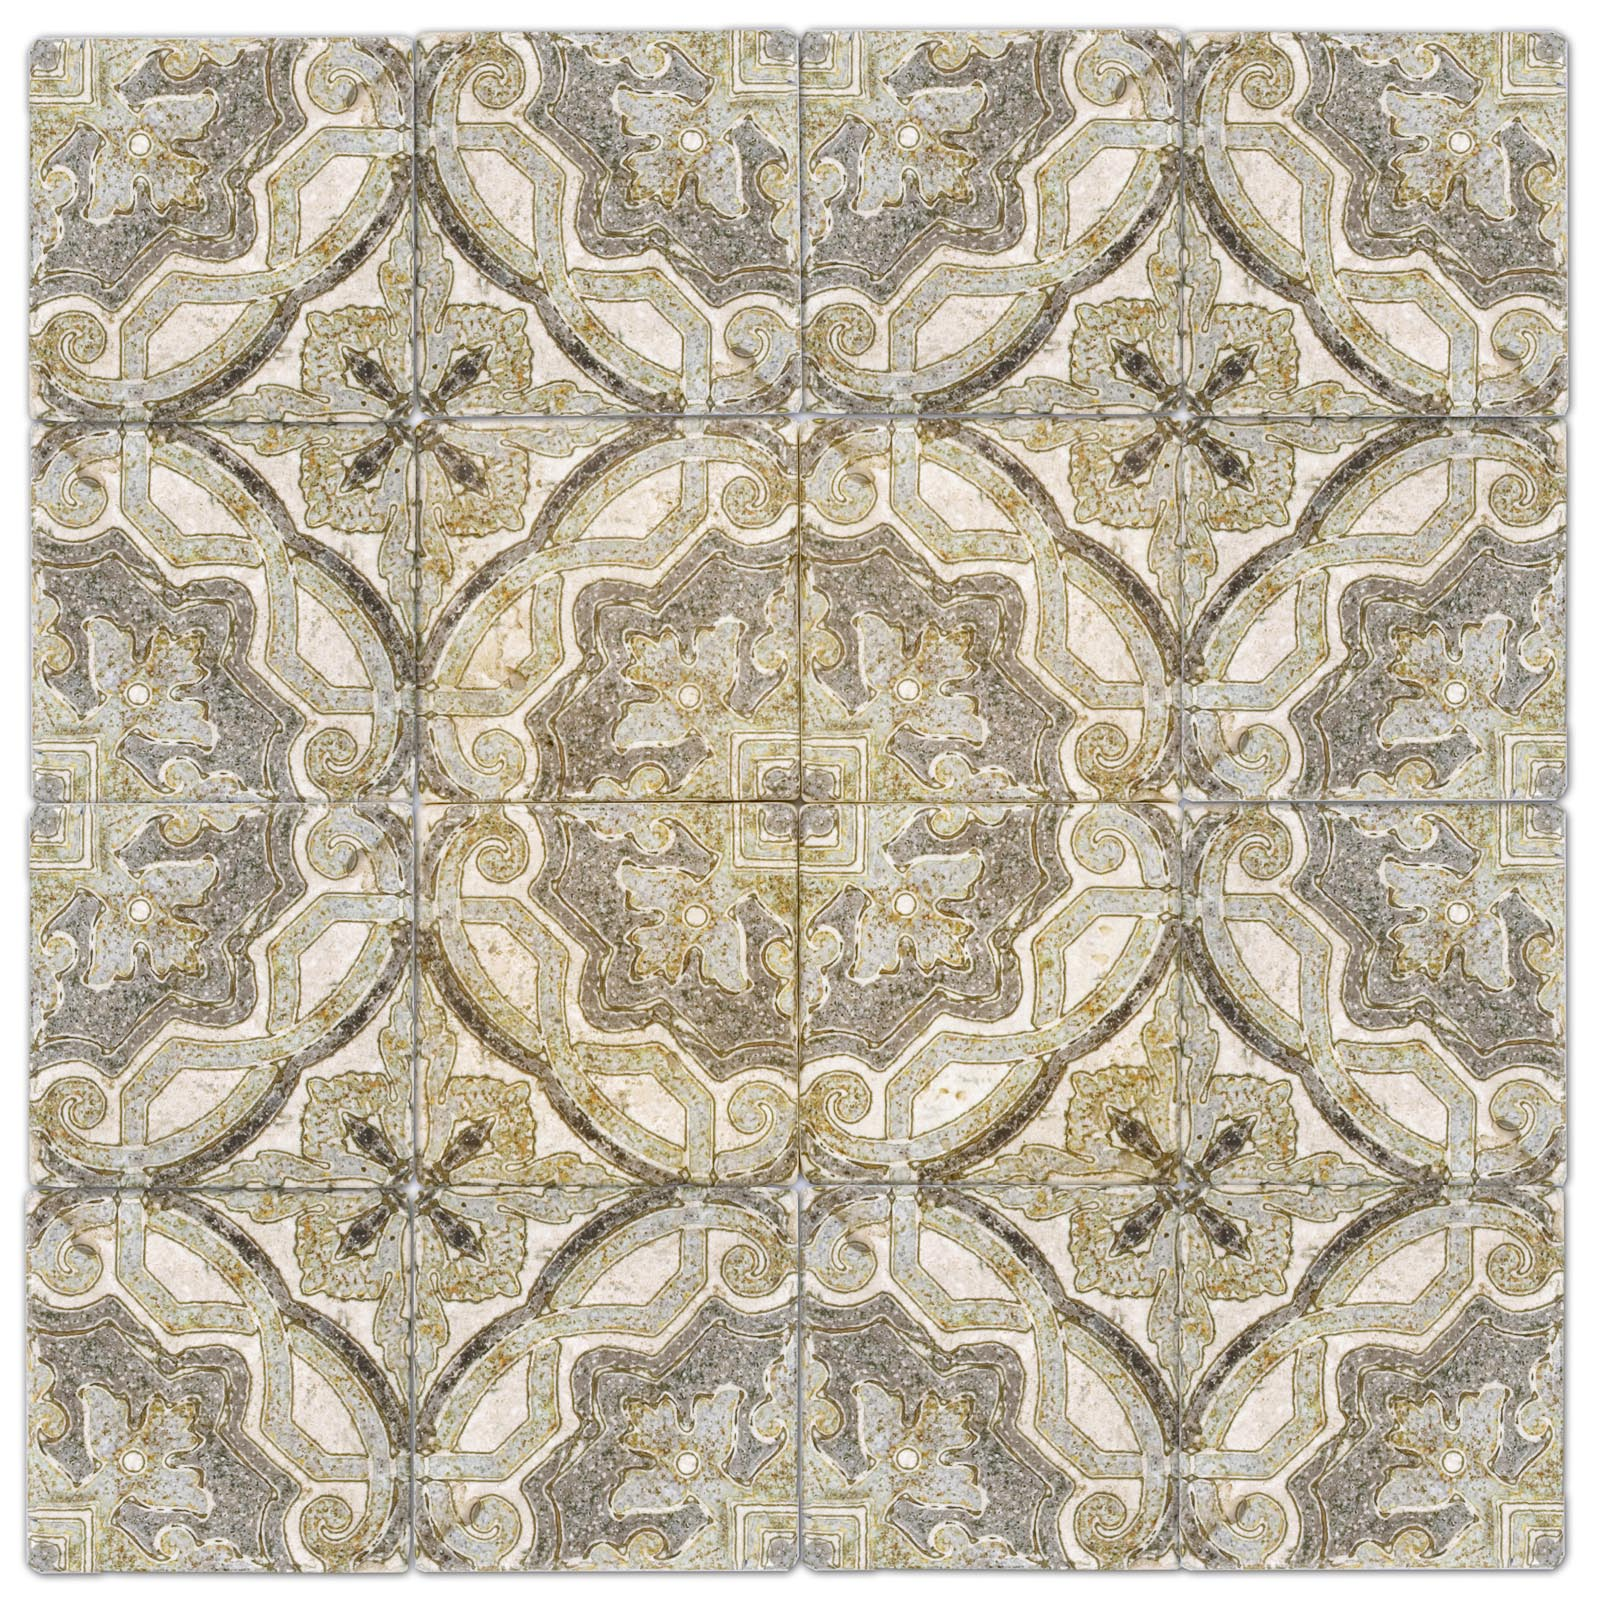 30 Pictures Of Bathroom Wall Tile 12x12 2019